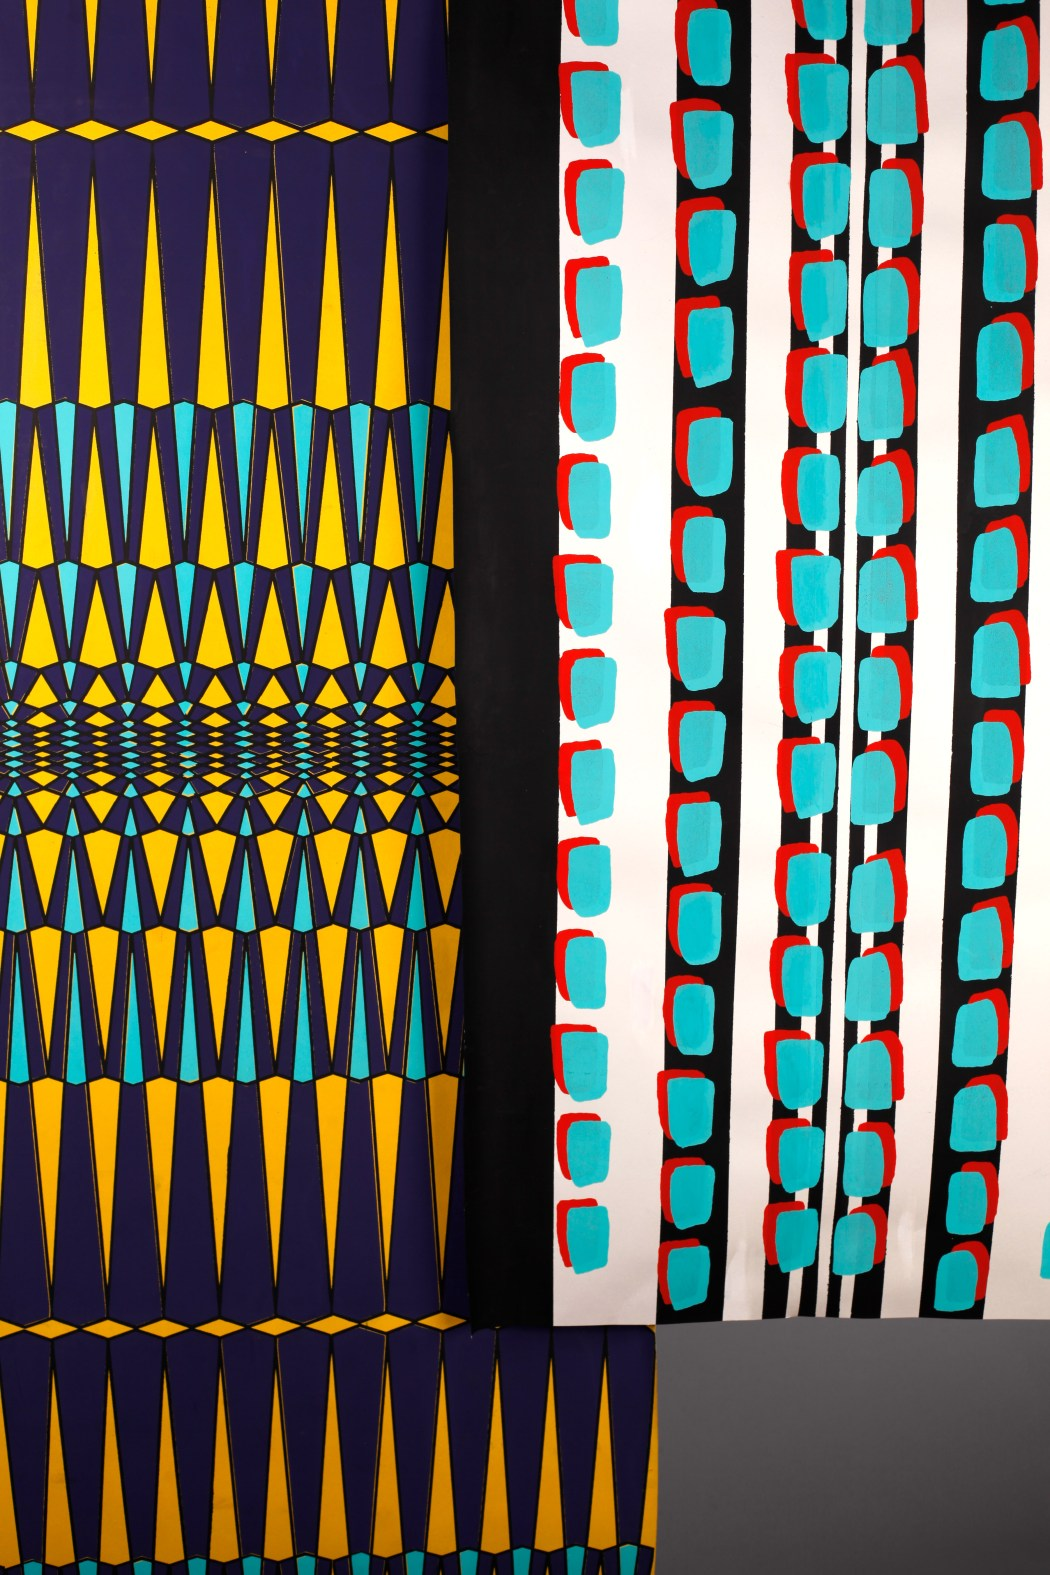 Lucy Walker Cellular Sequence (5)